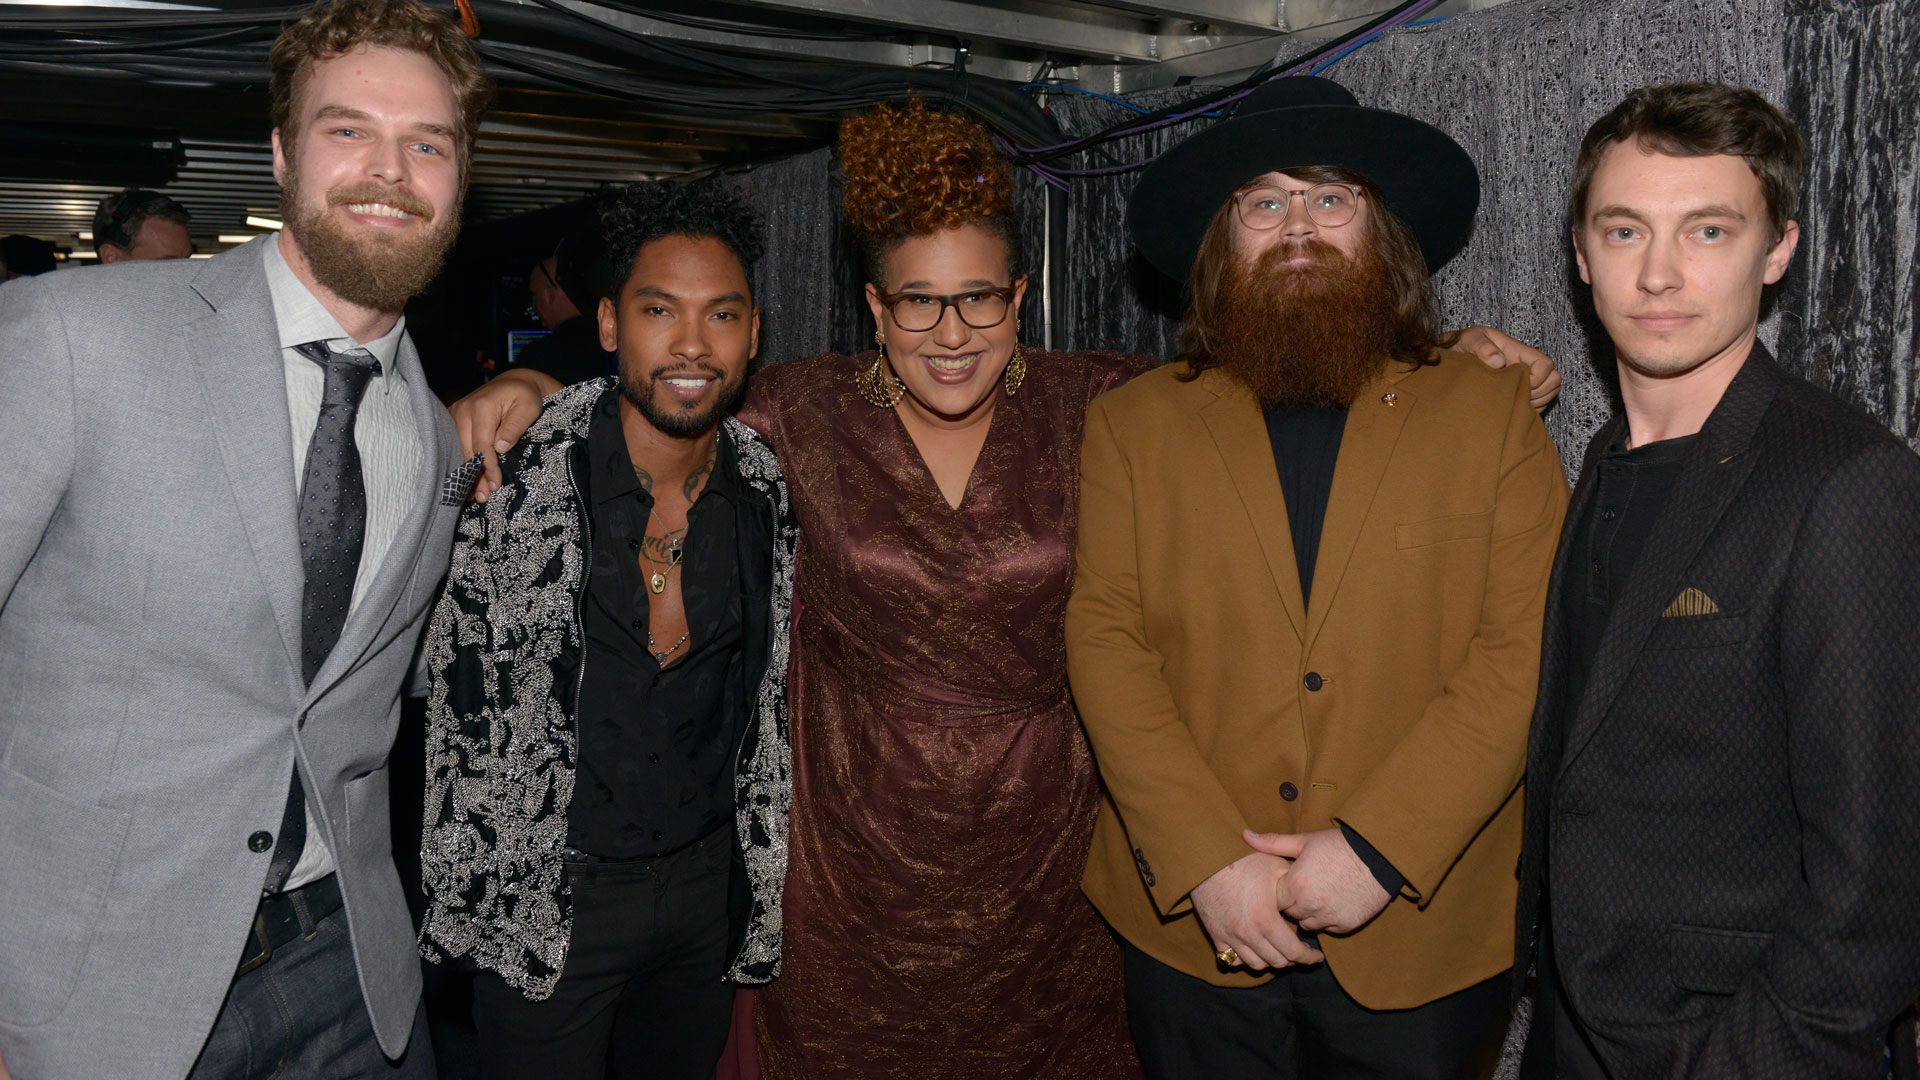 Alabama Shakes and Miguel cuddle up for a group shot